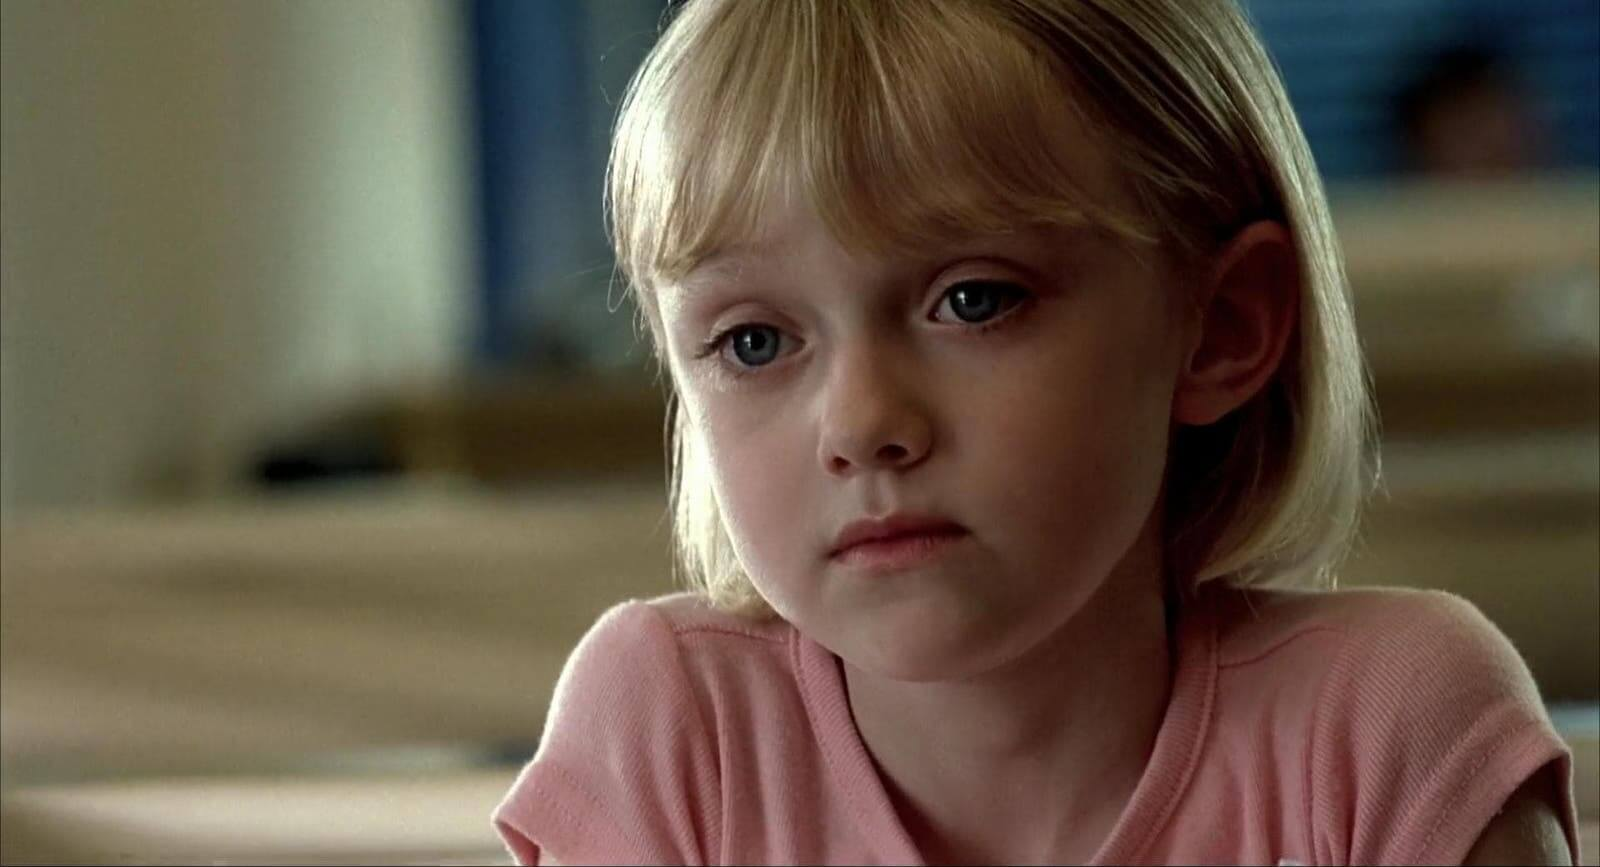 Child Labor Laws - Child Actors - Child Stars - Dakota Fanning - Studiobinder